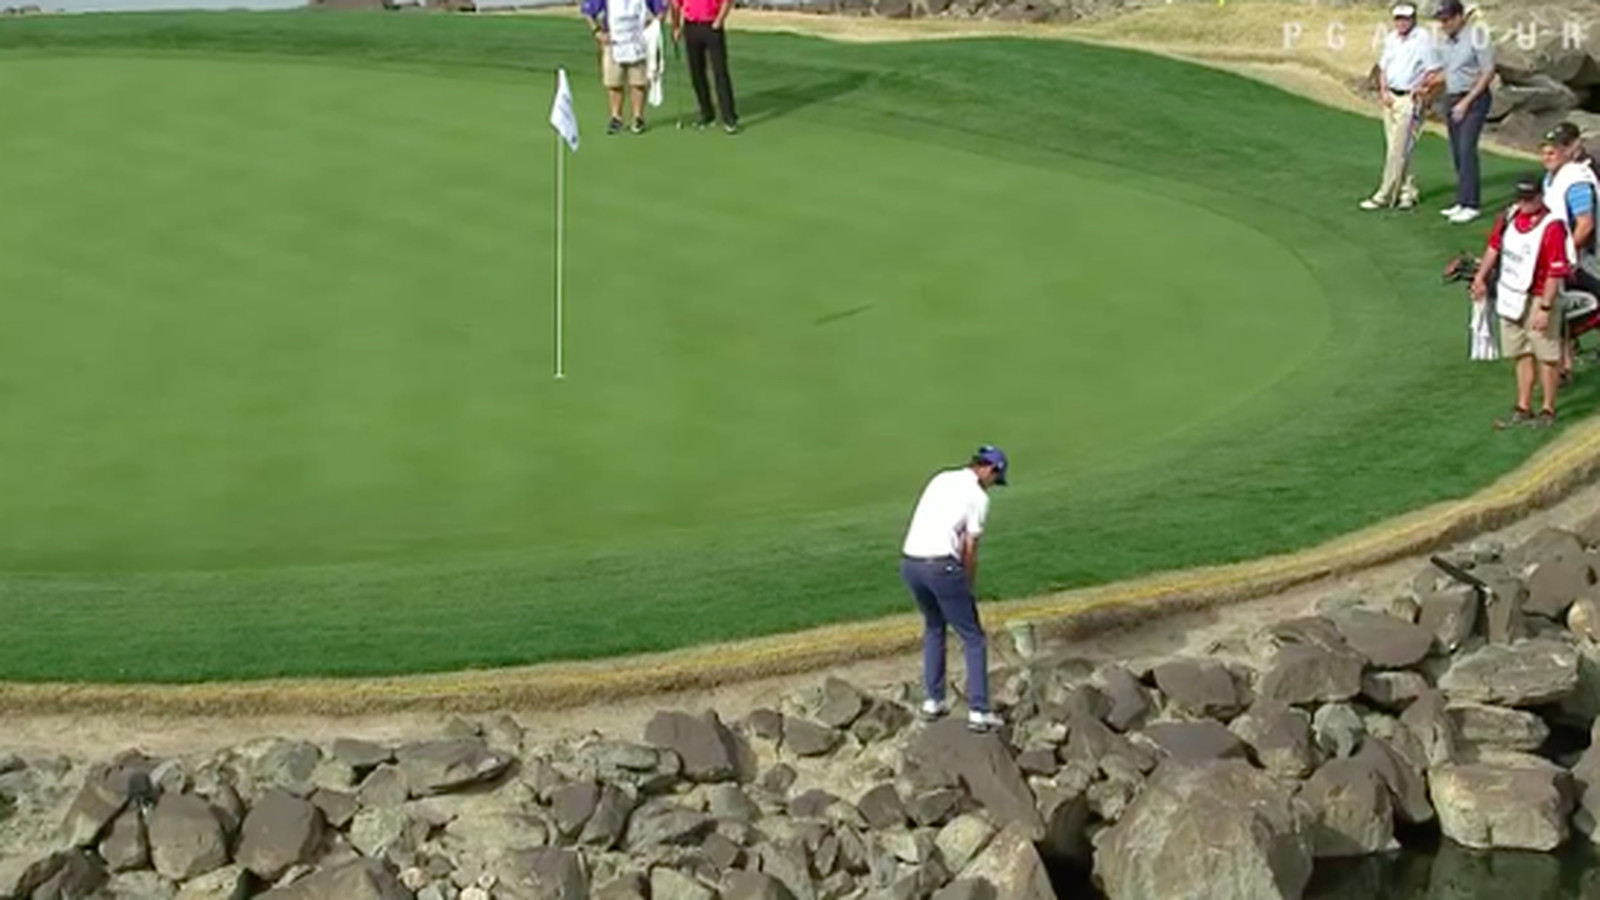 pga tour pro u0026 39 s attempted shot off rocks ends with